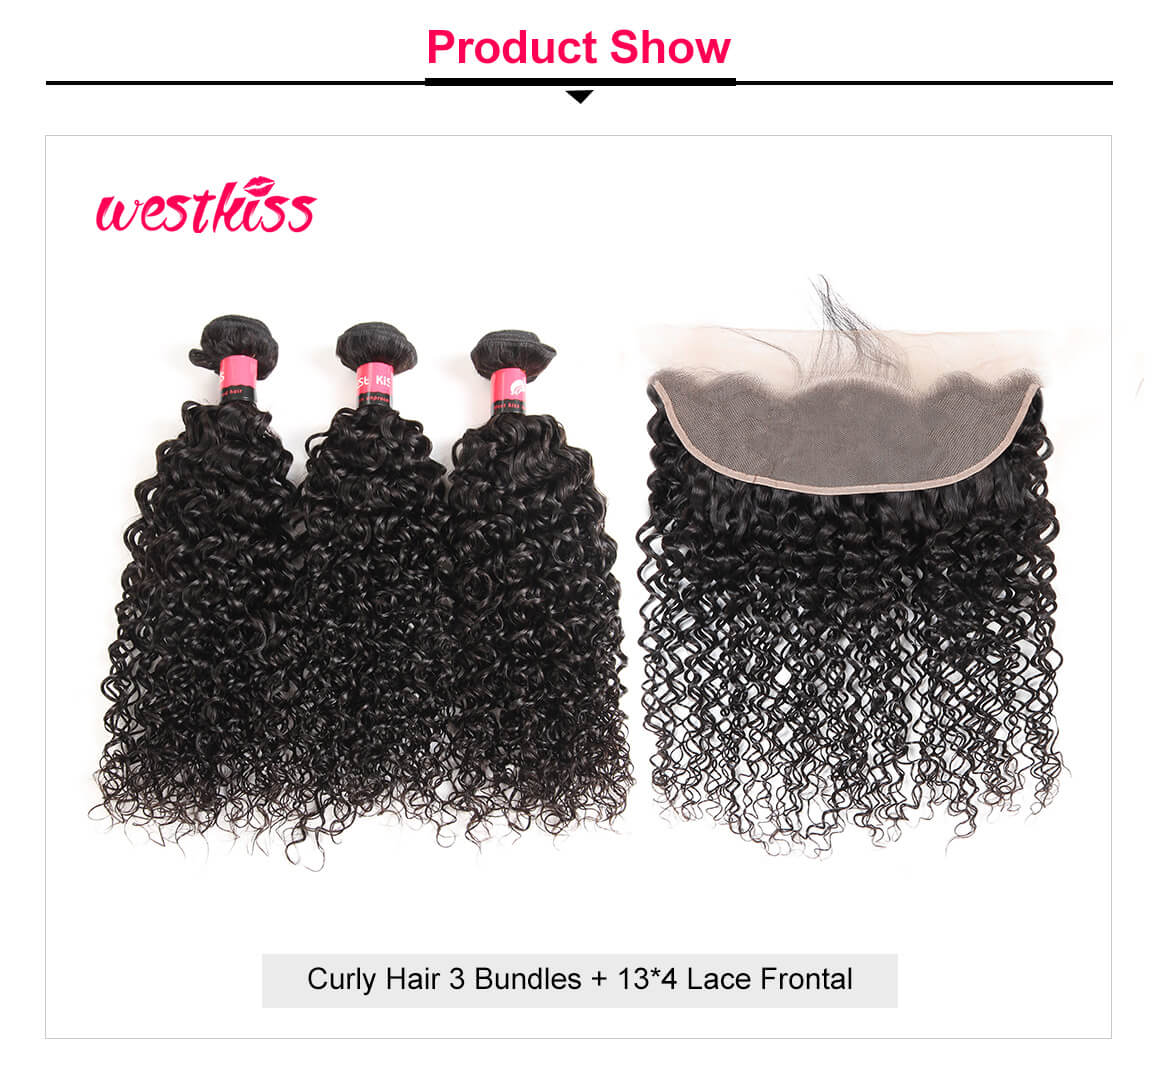 Jerry Curly Hair Bundles 3 Bundles